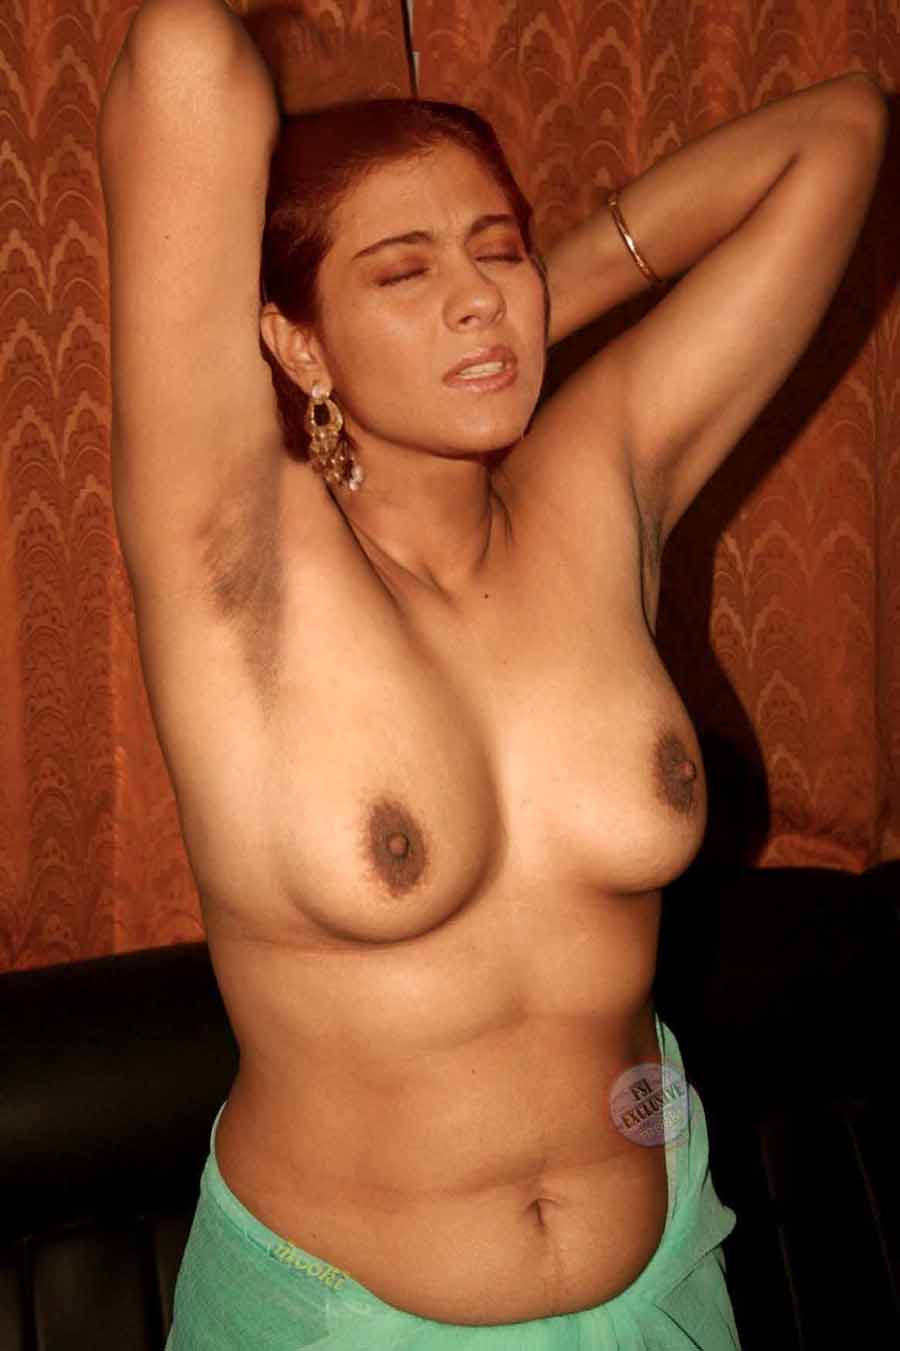 Kajol the porn star can